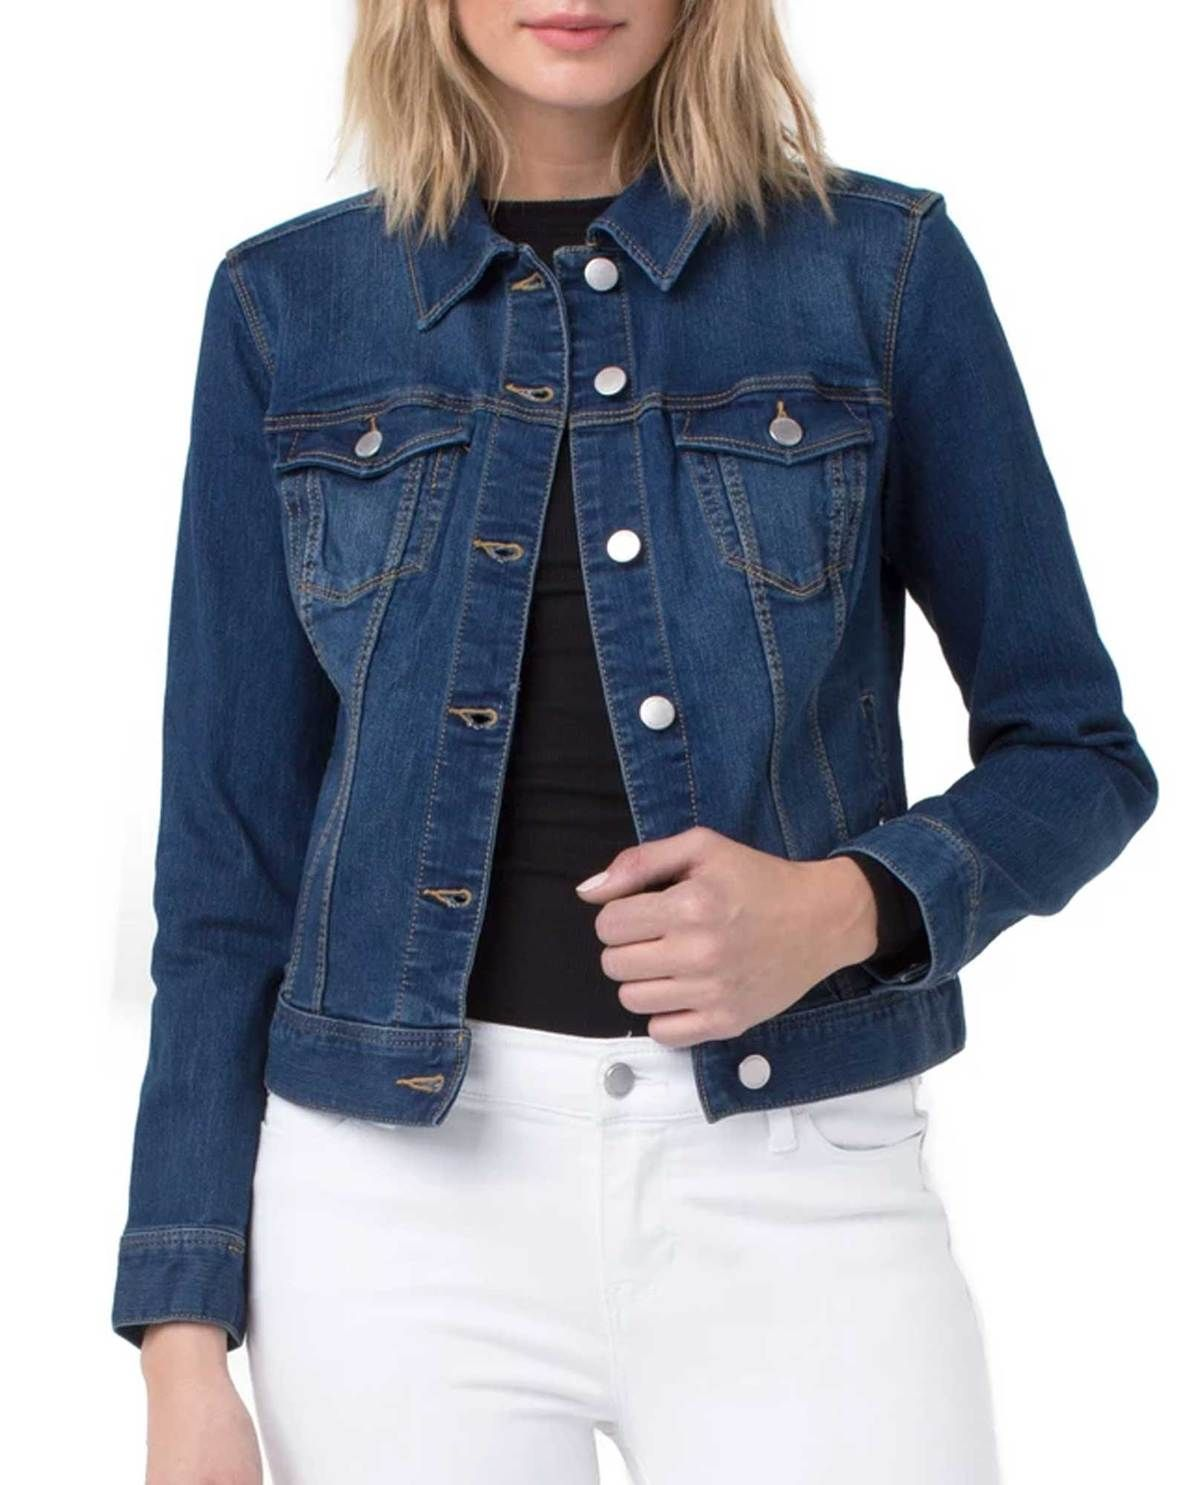 Liverpool Jeans Lm1004e3 Classic Jean Jacket Liverpool Jeans Classic Jeans Classic Denim Jacket [ 1485 x 1200 Pixel ]